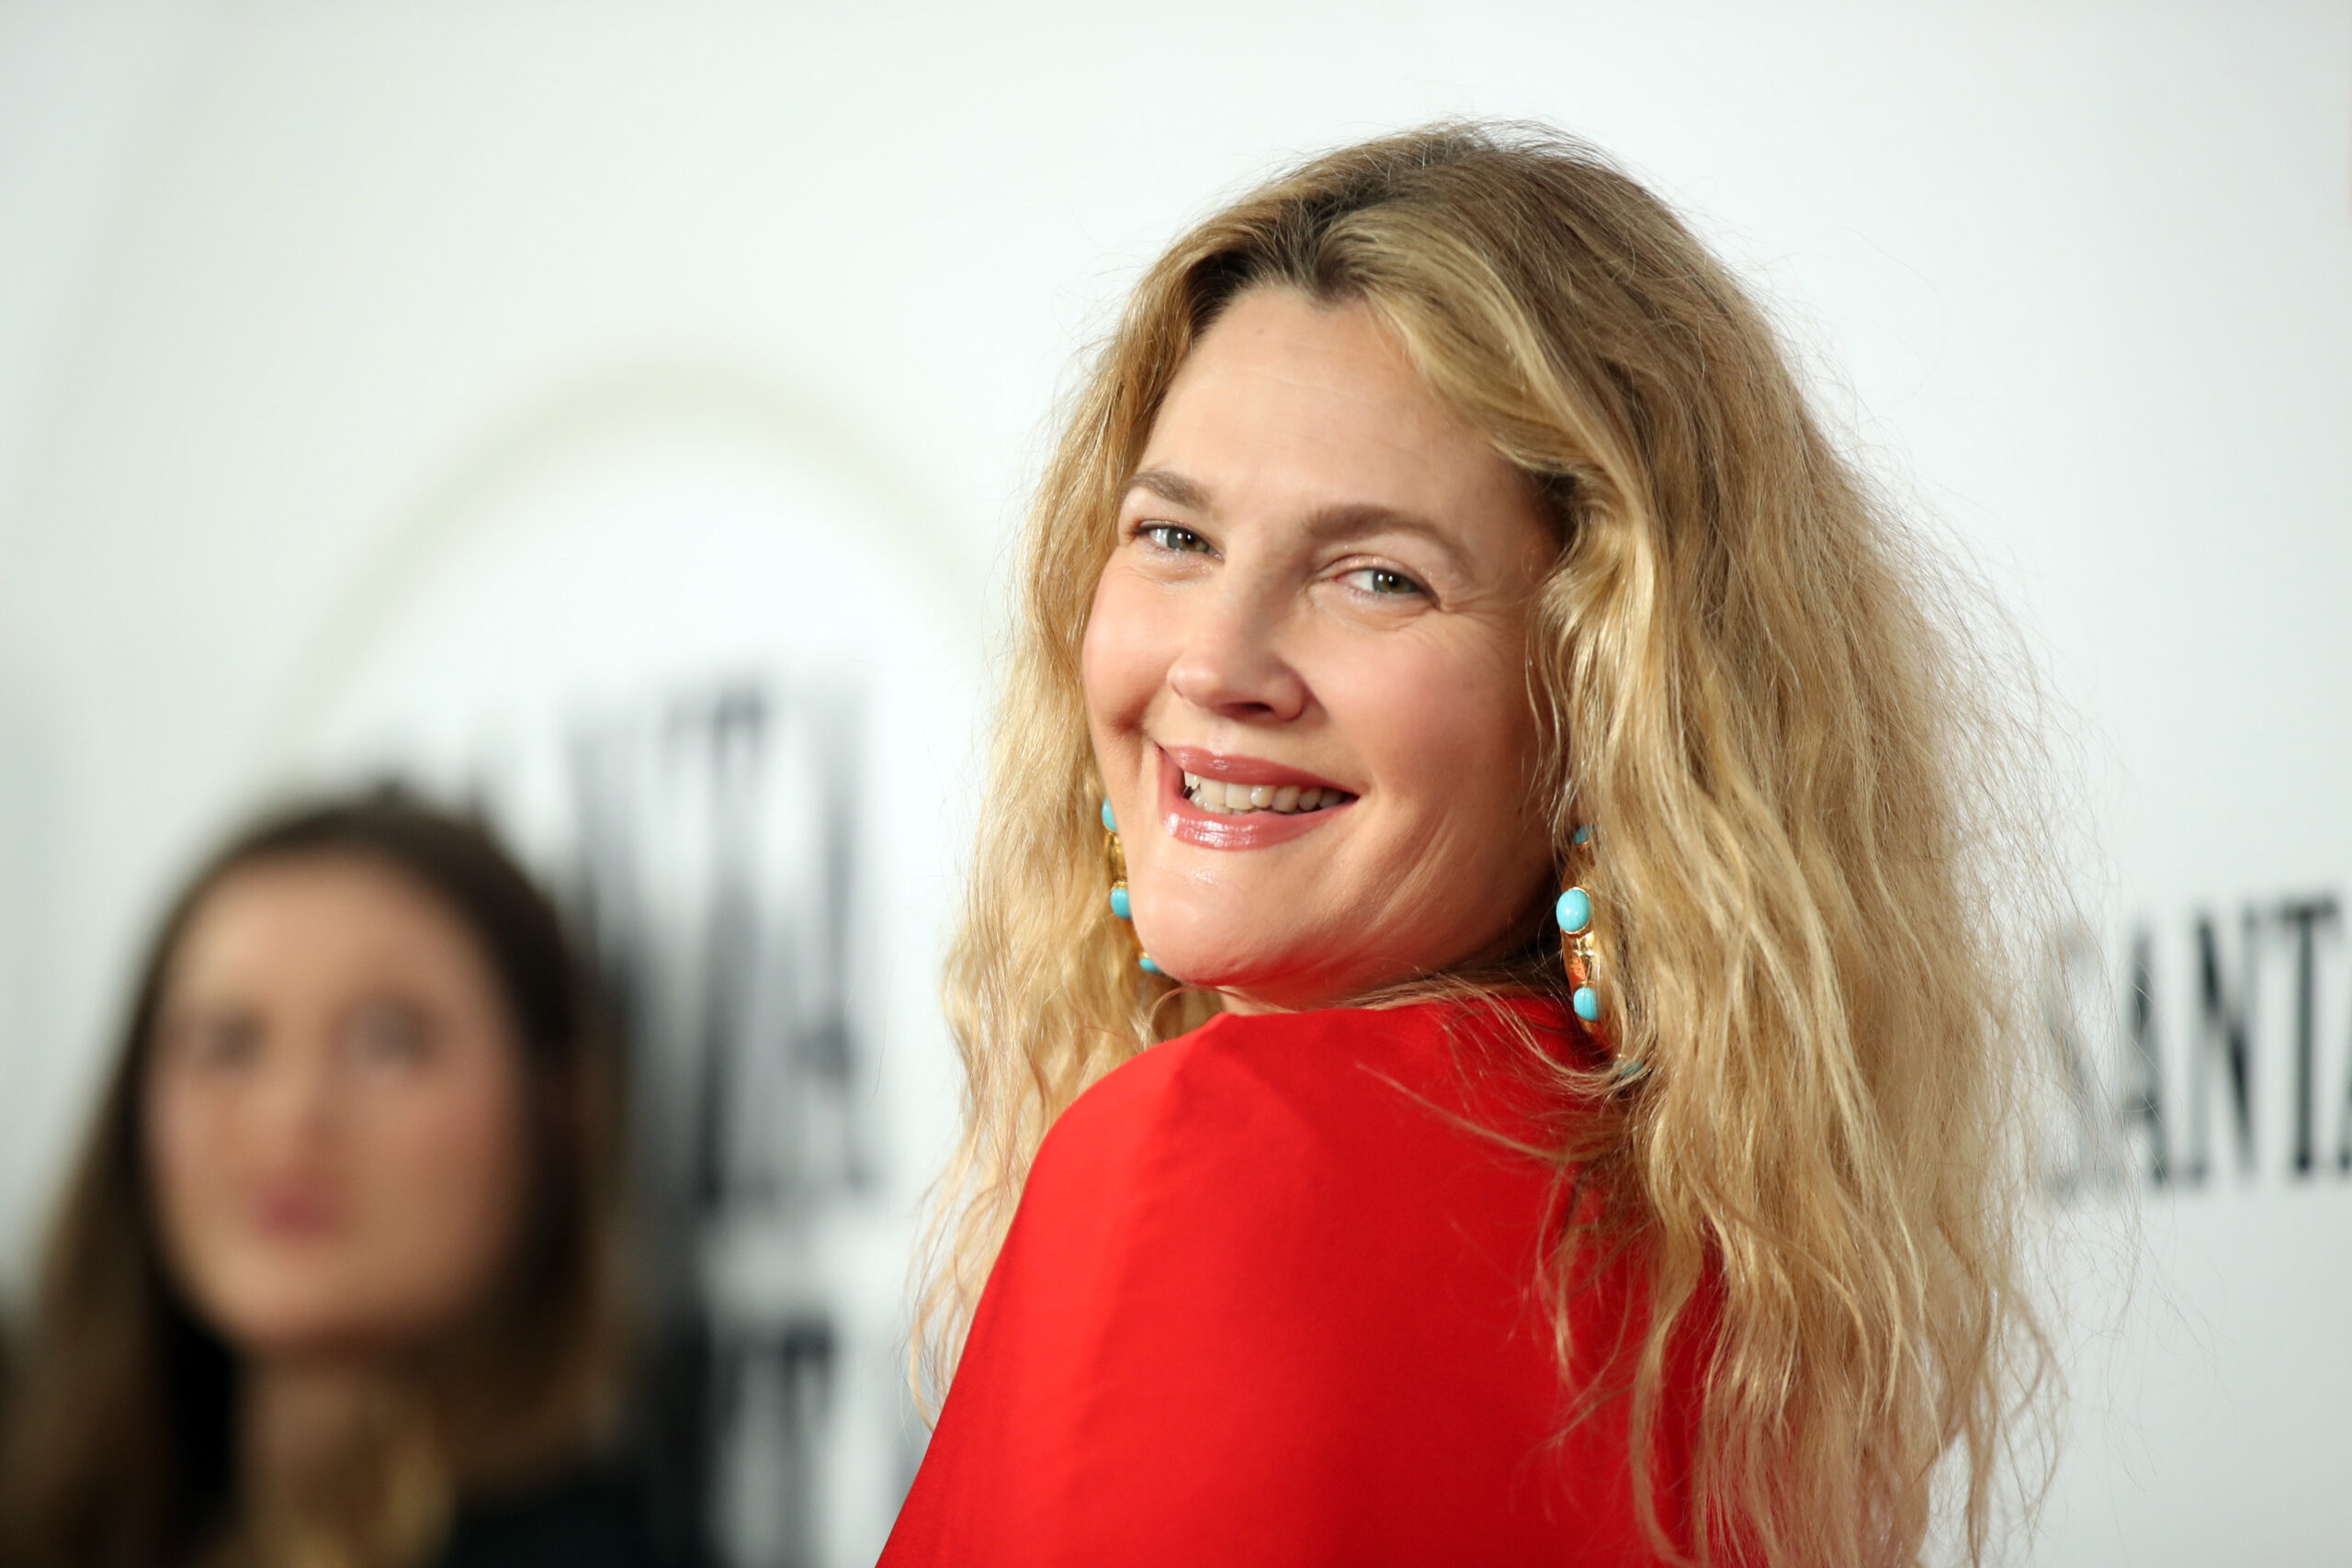 Drew Barrymore Shares Heartwarming Post in Support of Simone Biles